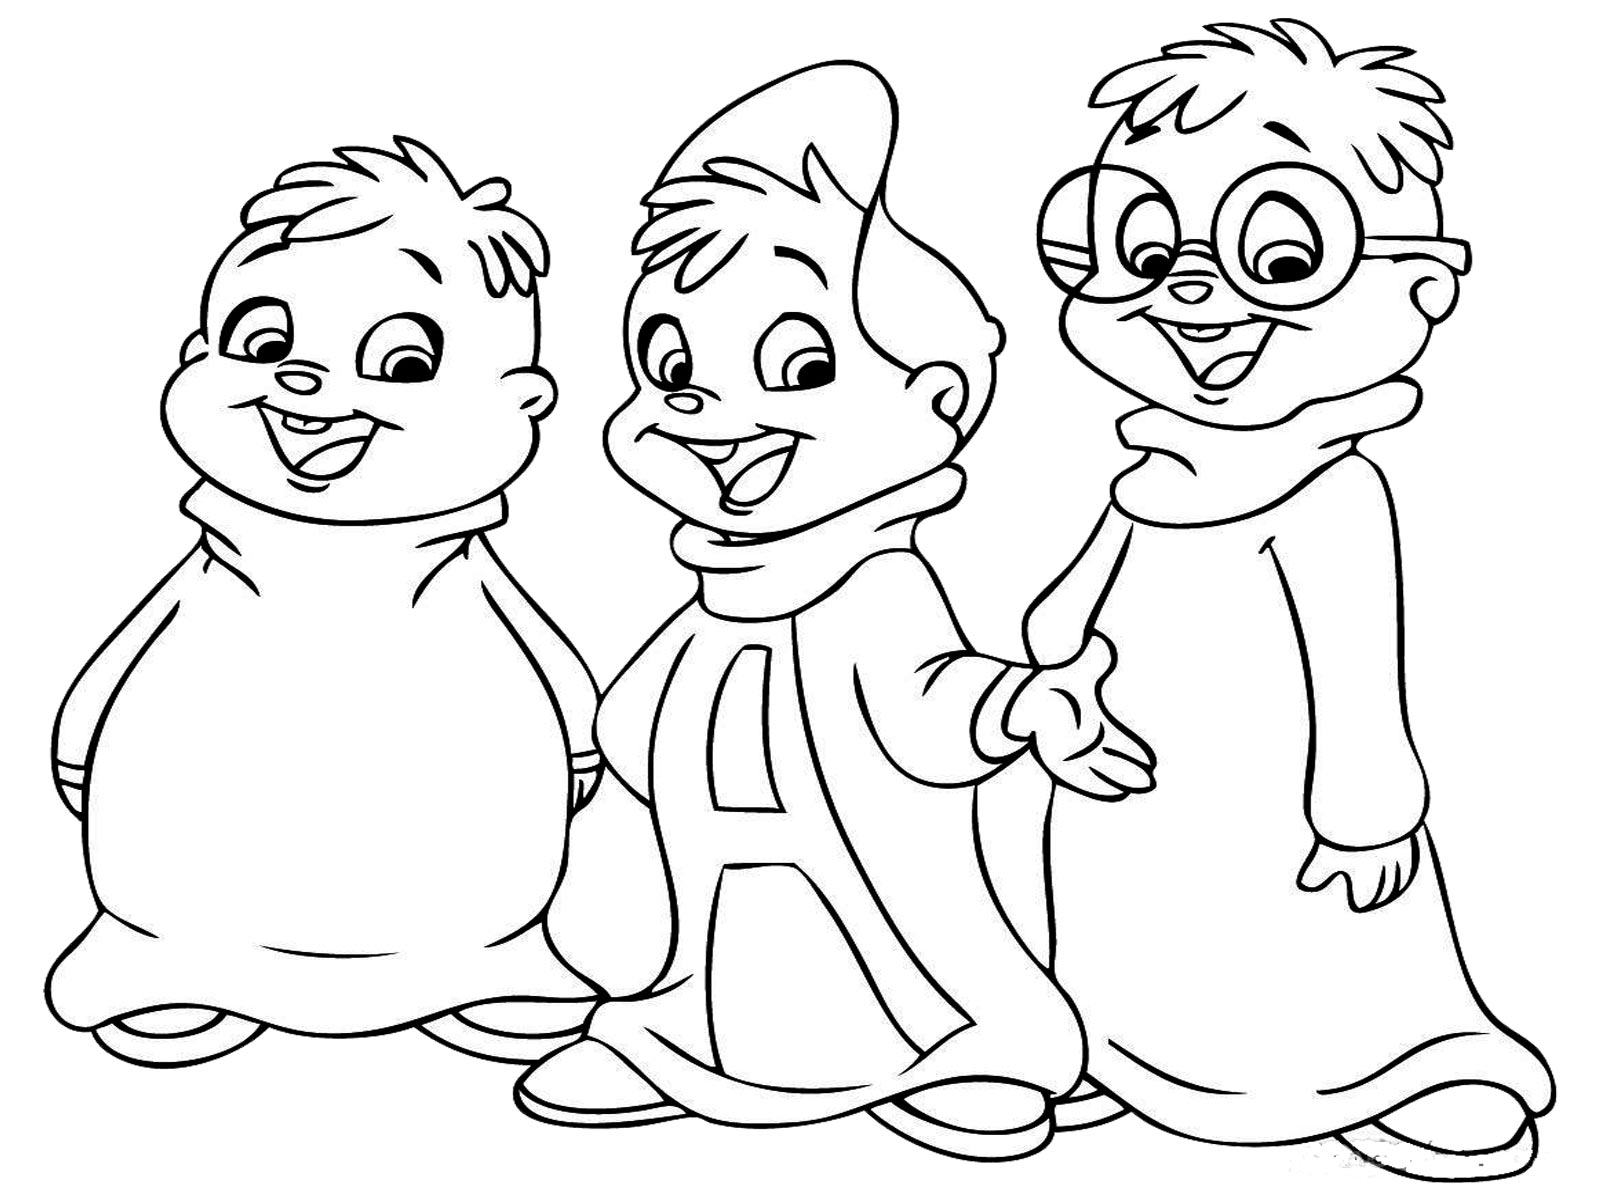 Coloring Pages For Children Childrens Day Coloring Pages  Coloring Kids